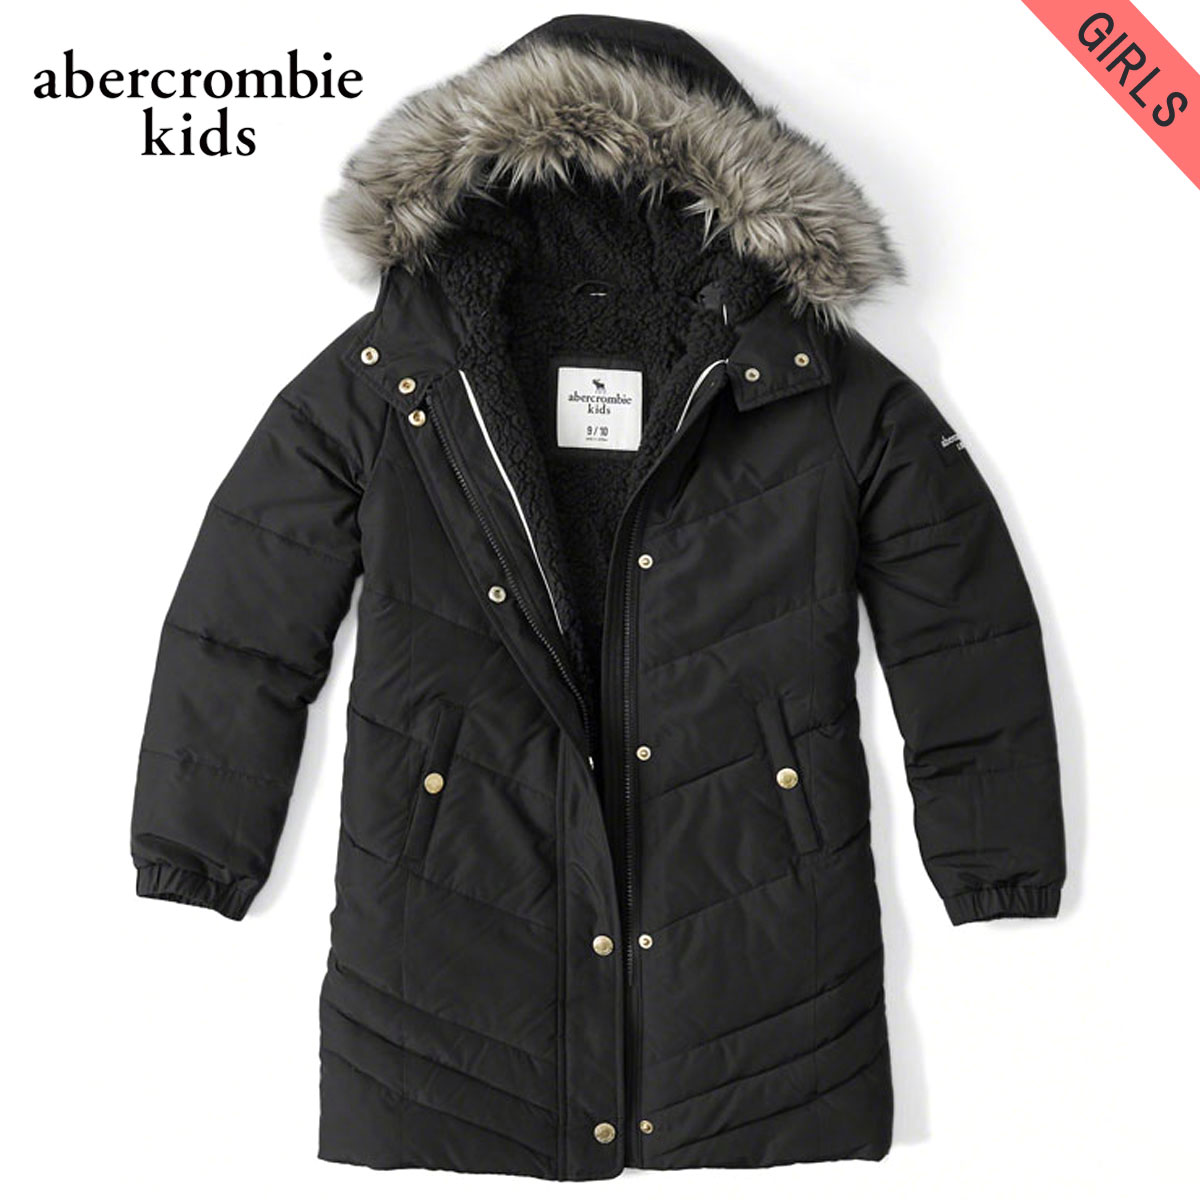 20%OFFセール 【販売期間 1/9 20:00~1/16 01:59】 アバクロキッズ AbercrombieKids 正規品 子供服 ガールズ コート sherpa-lined quilted parka 244-856-0221-091